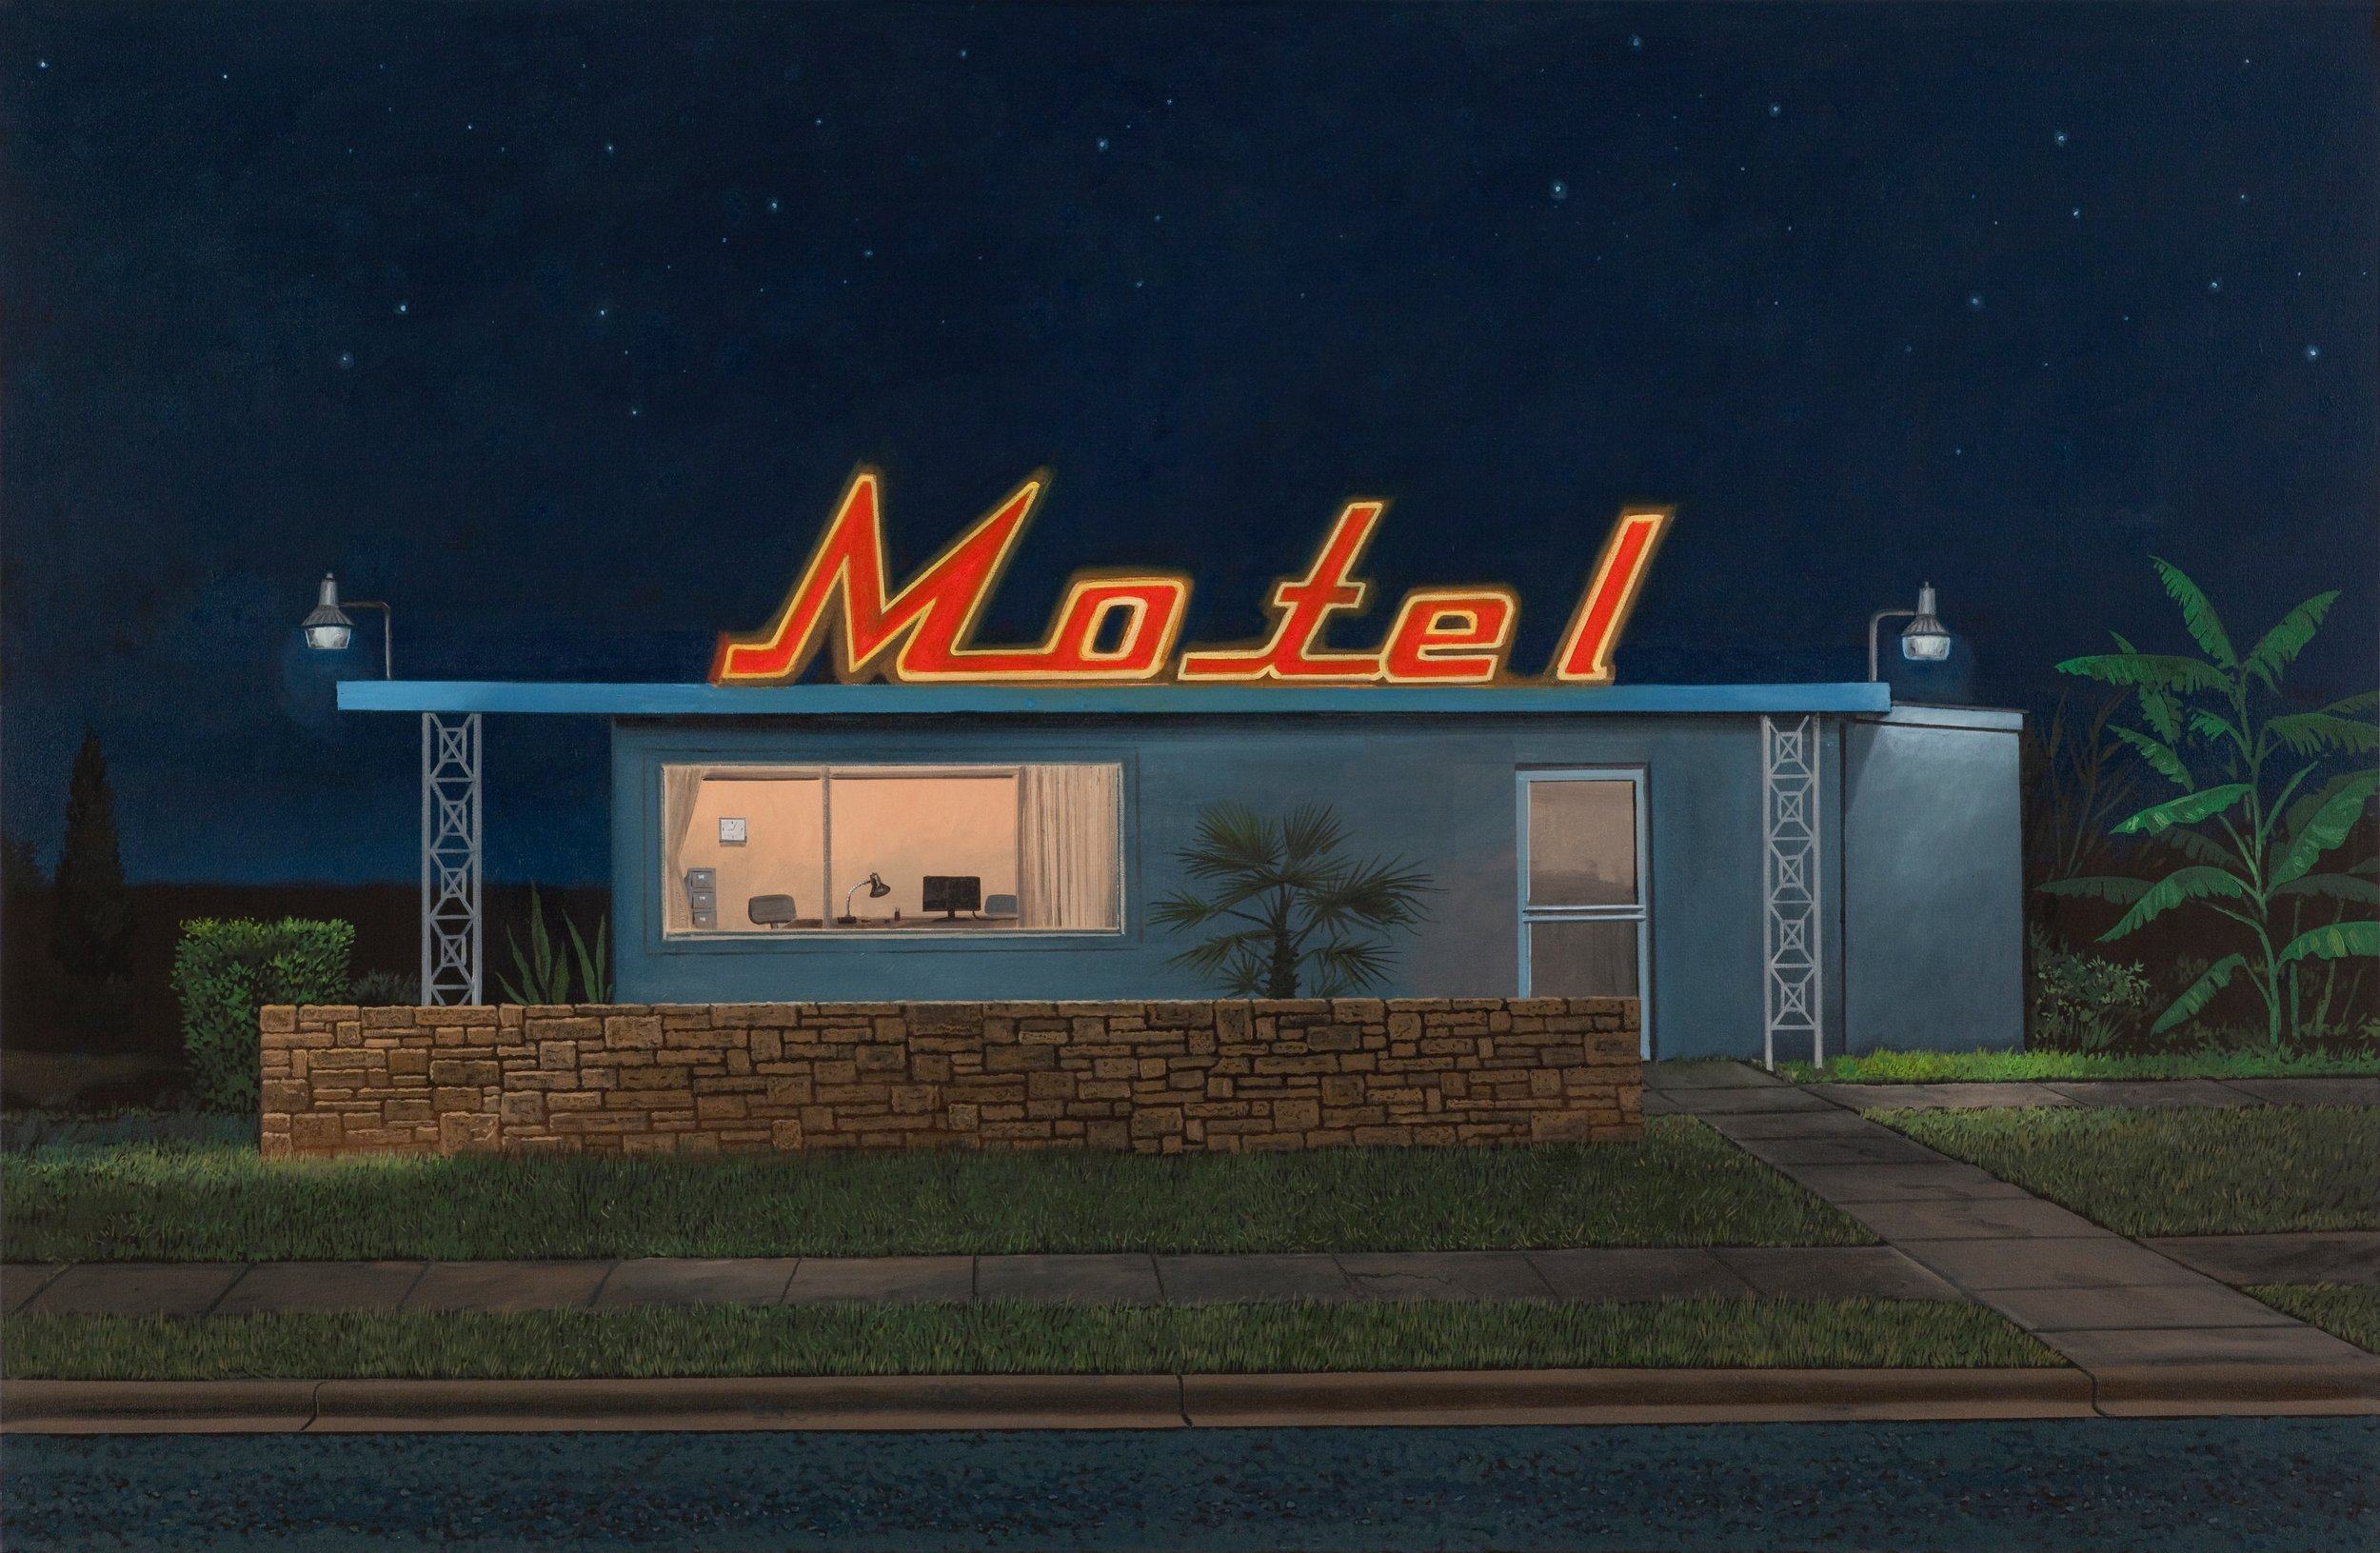 "Daniel Blagg,  Western   Motel , 2015, oil on canvas, 38"" X 58"". Private Collection."